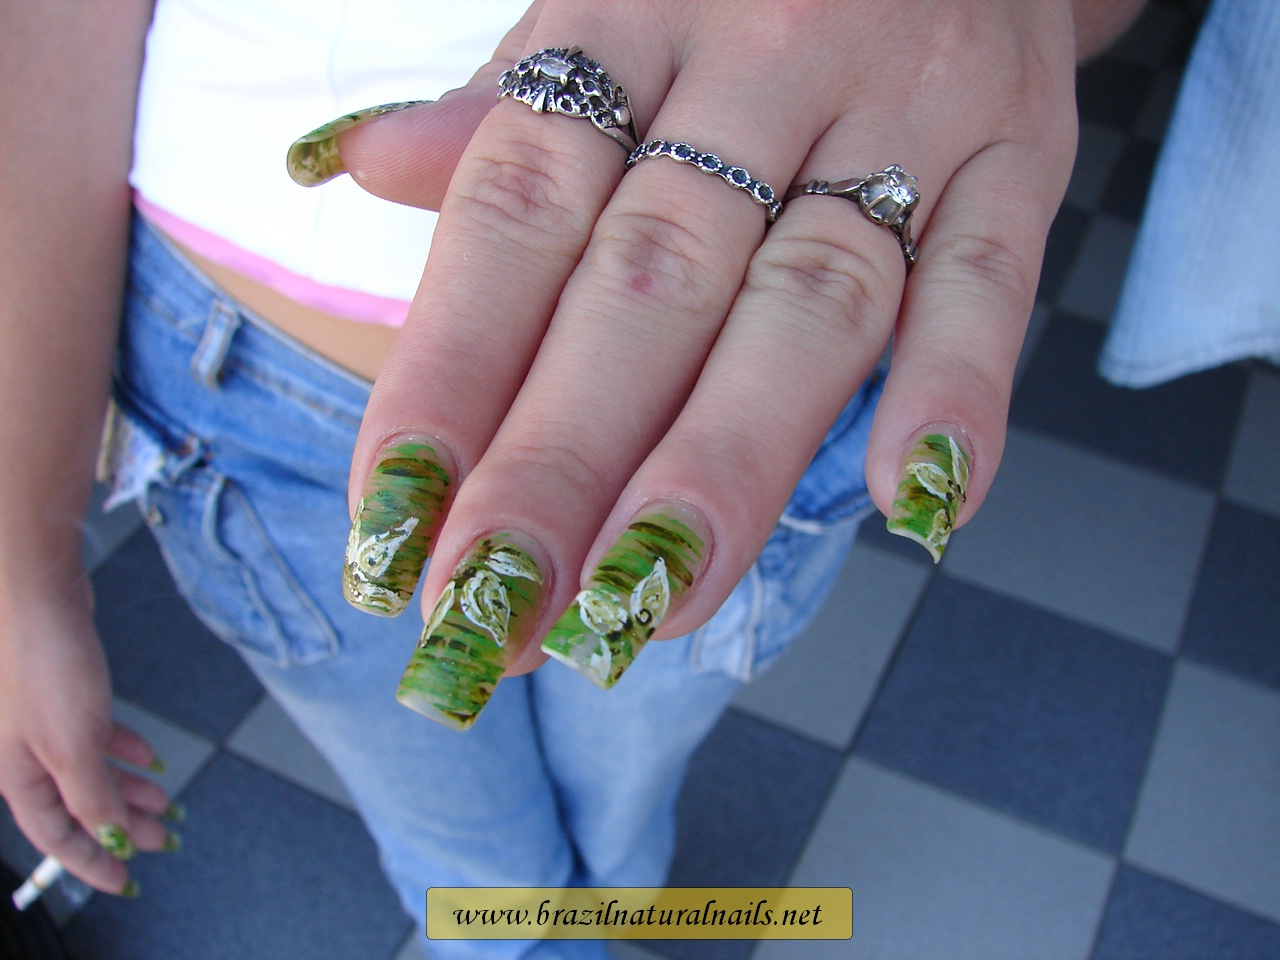 BrazilNaturalNails.net - Natural girls, beautiful exotic nails.